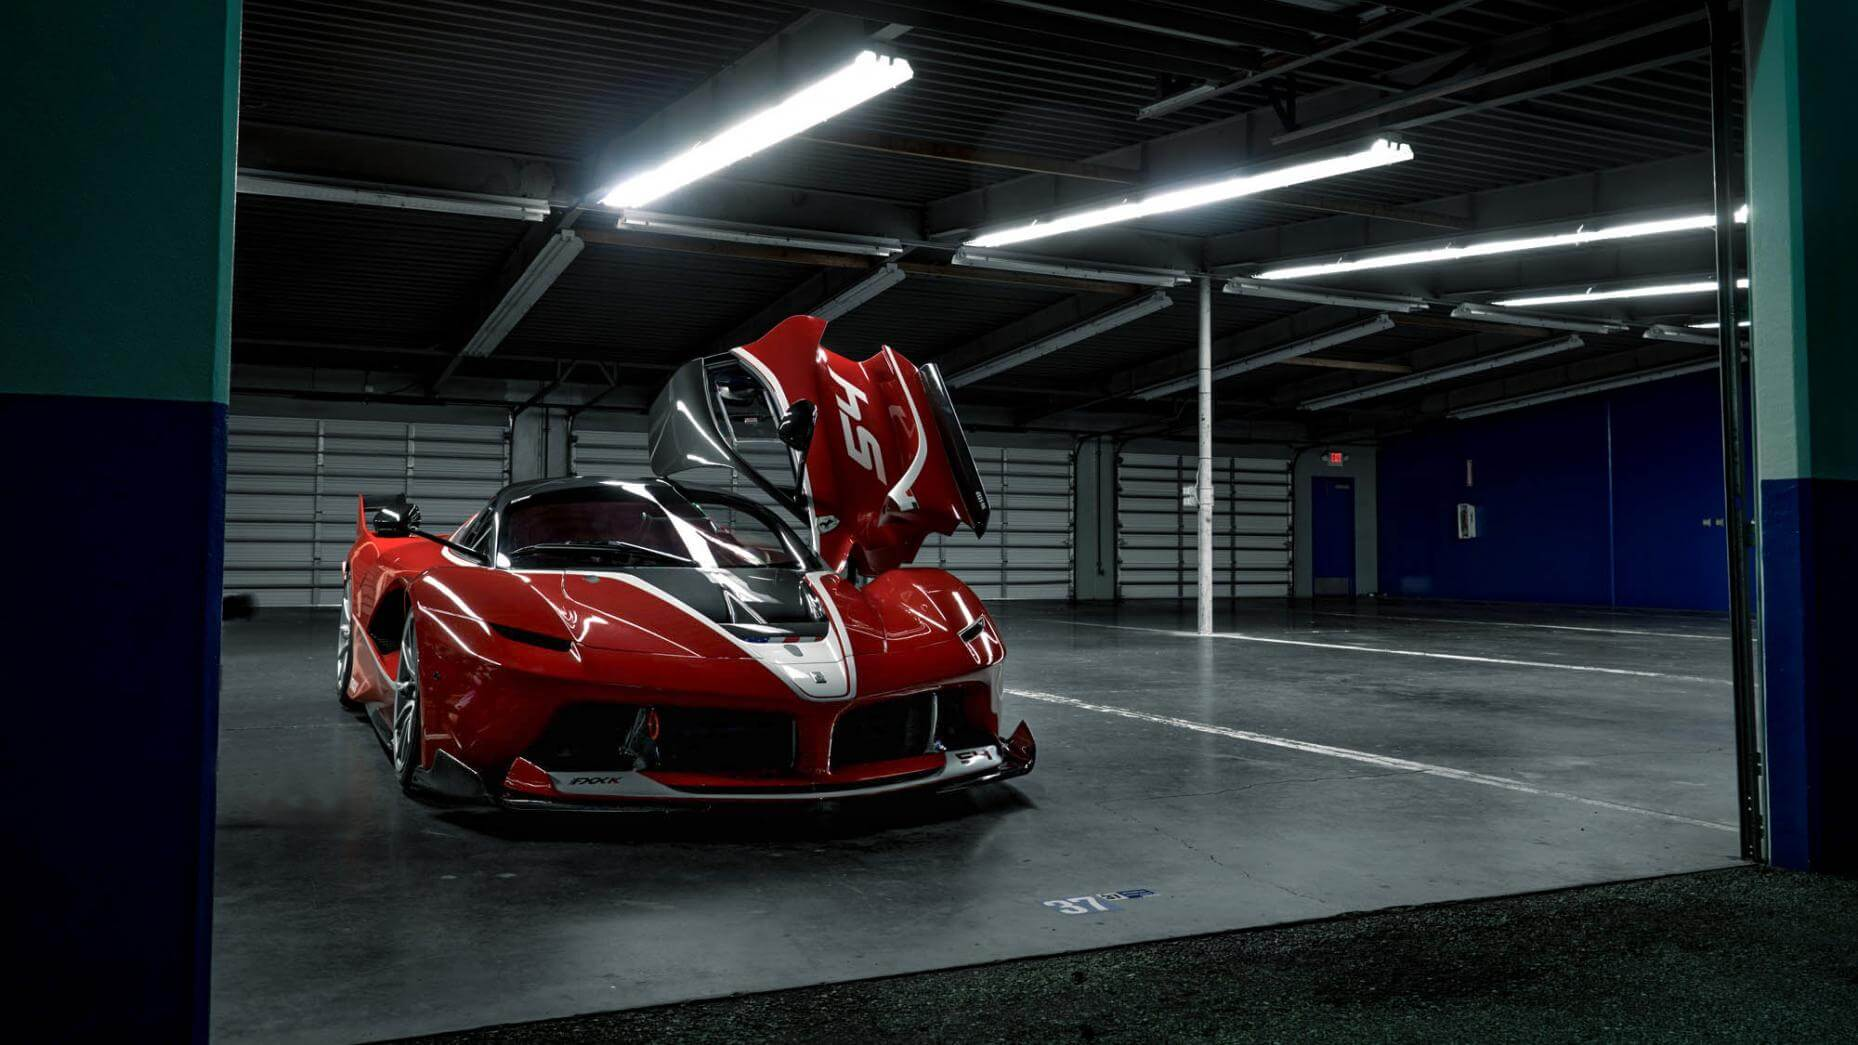 chris harris goes fast as fxxk in the latest top gear episode gsm performance. Black Bedroom Furniture Sets. Home Design Ideas